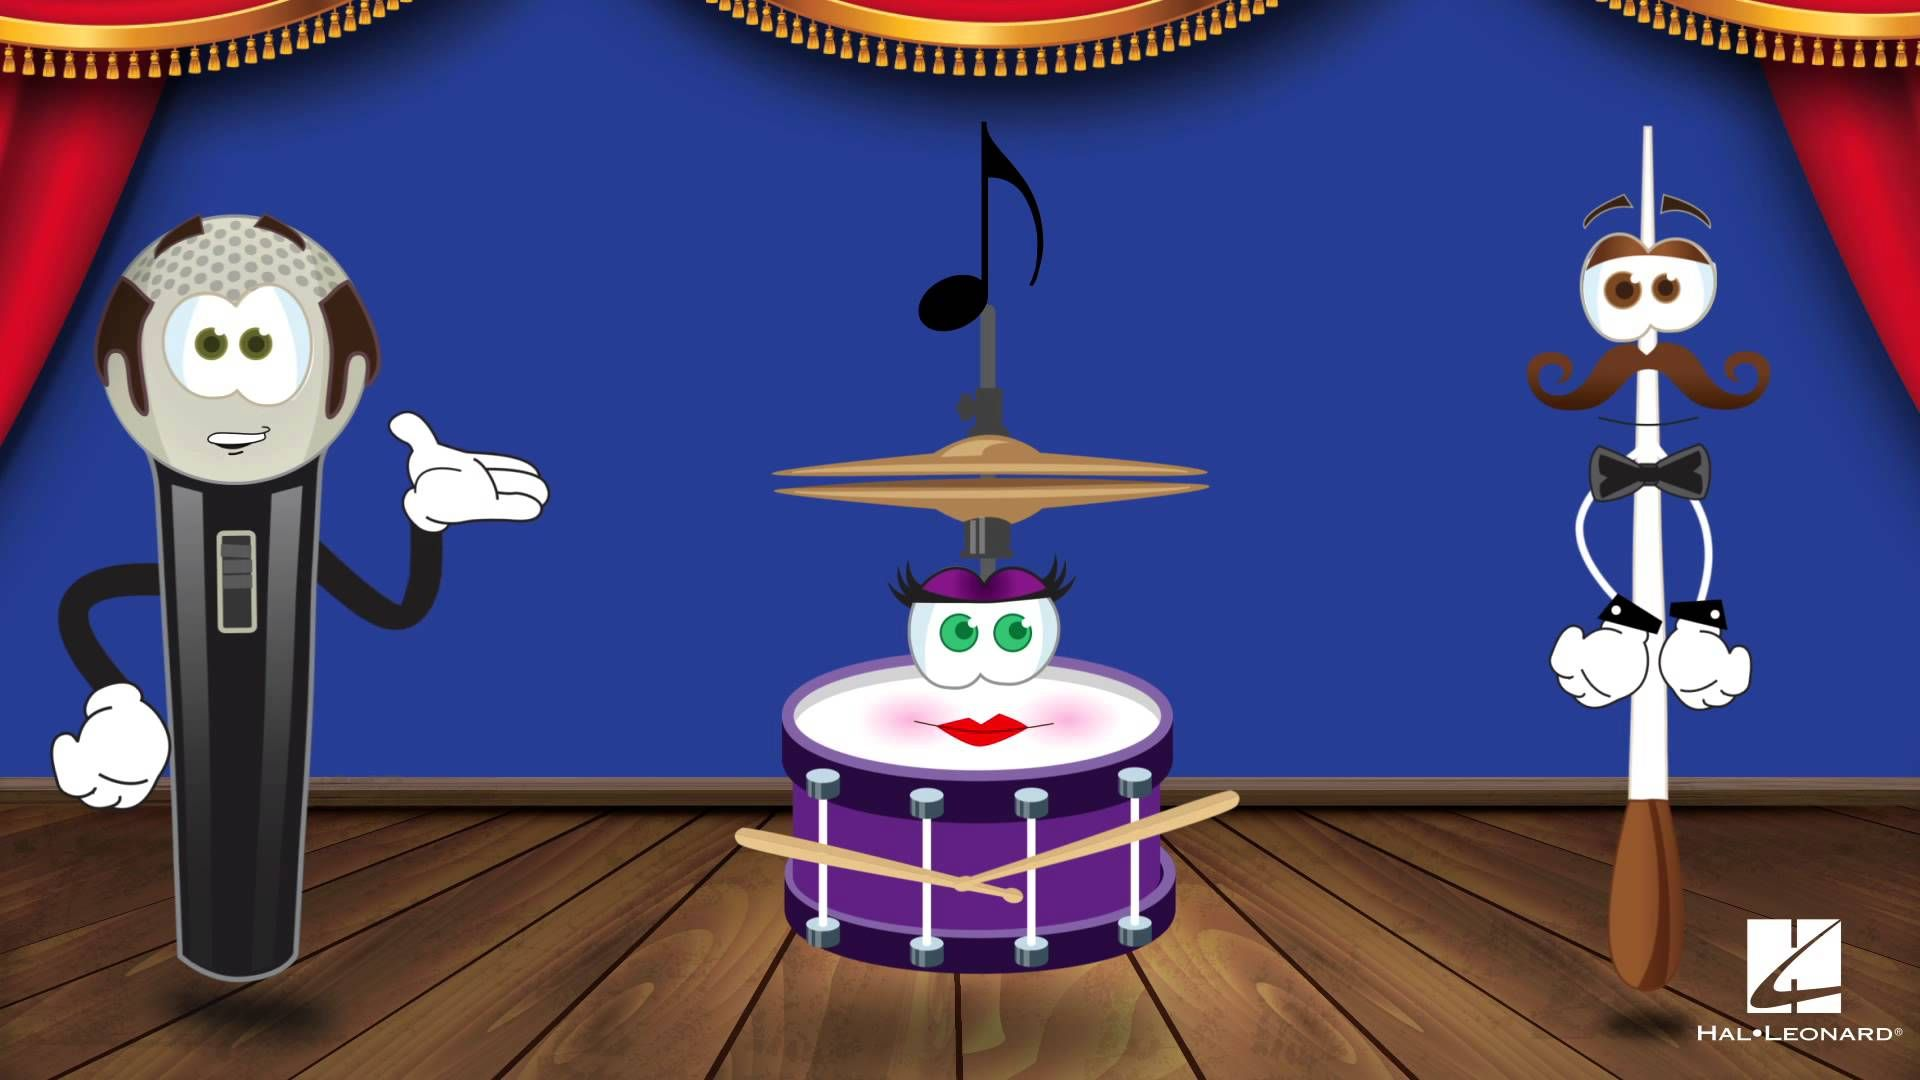 Learn All About Rhythm In This Episode Of The Music Show